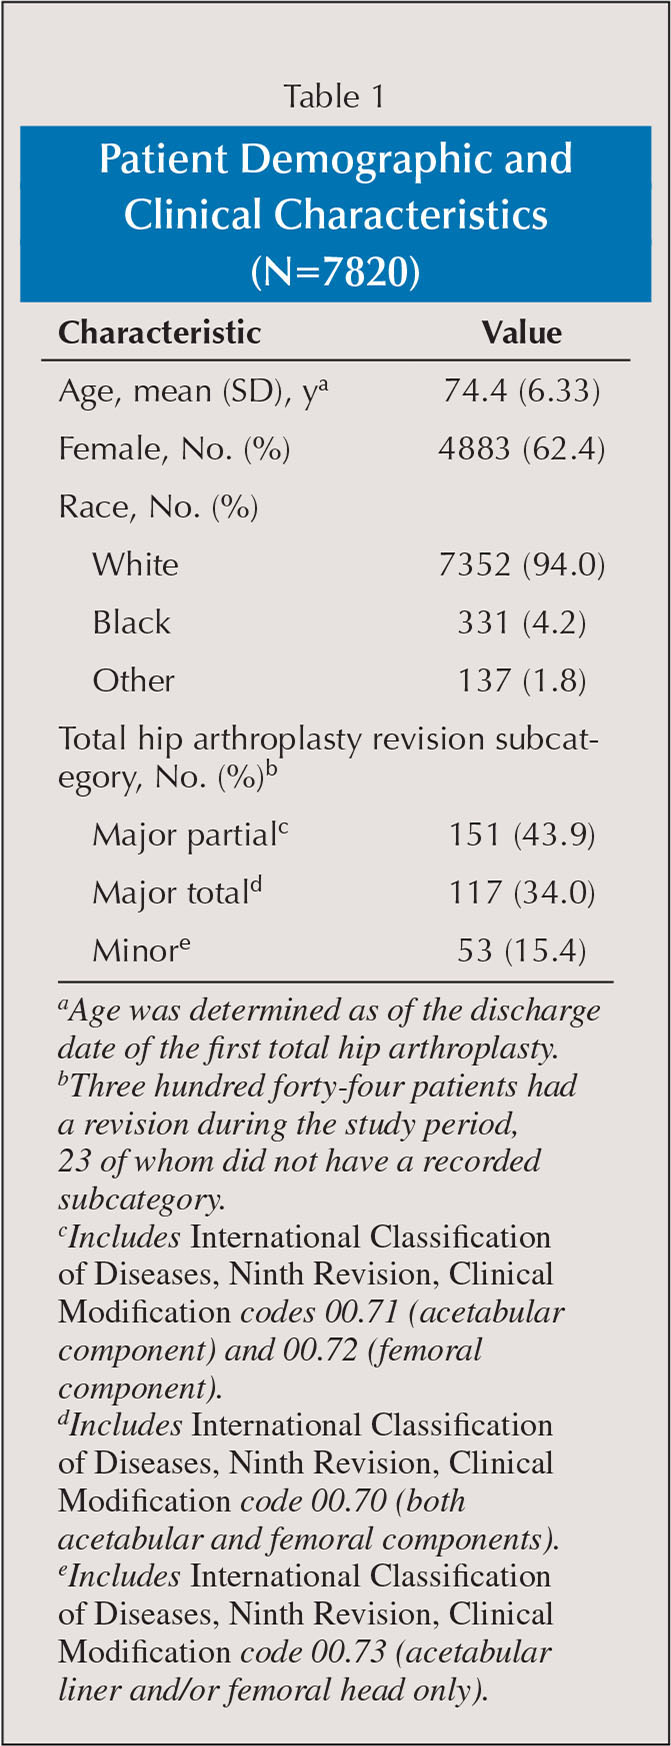 Patient Demographic and Clinical Characteristics (N=7820)